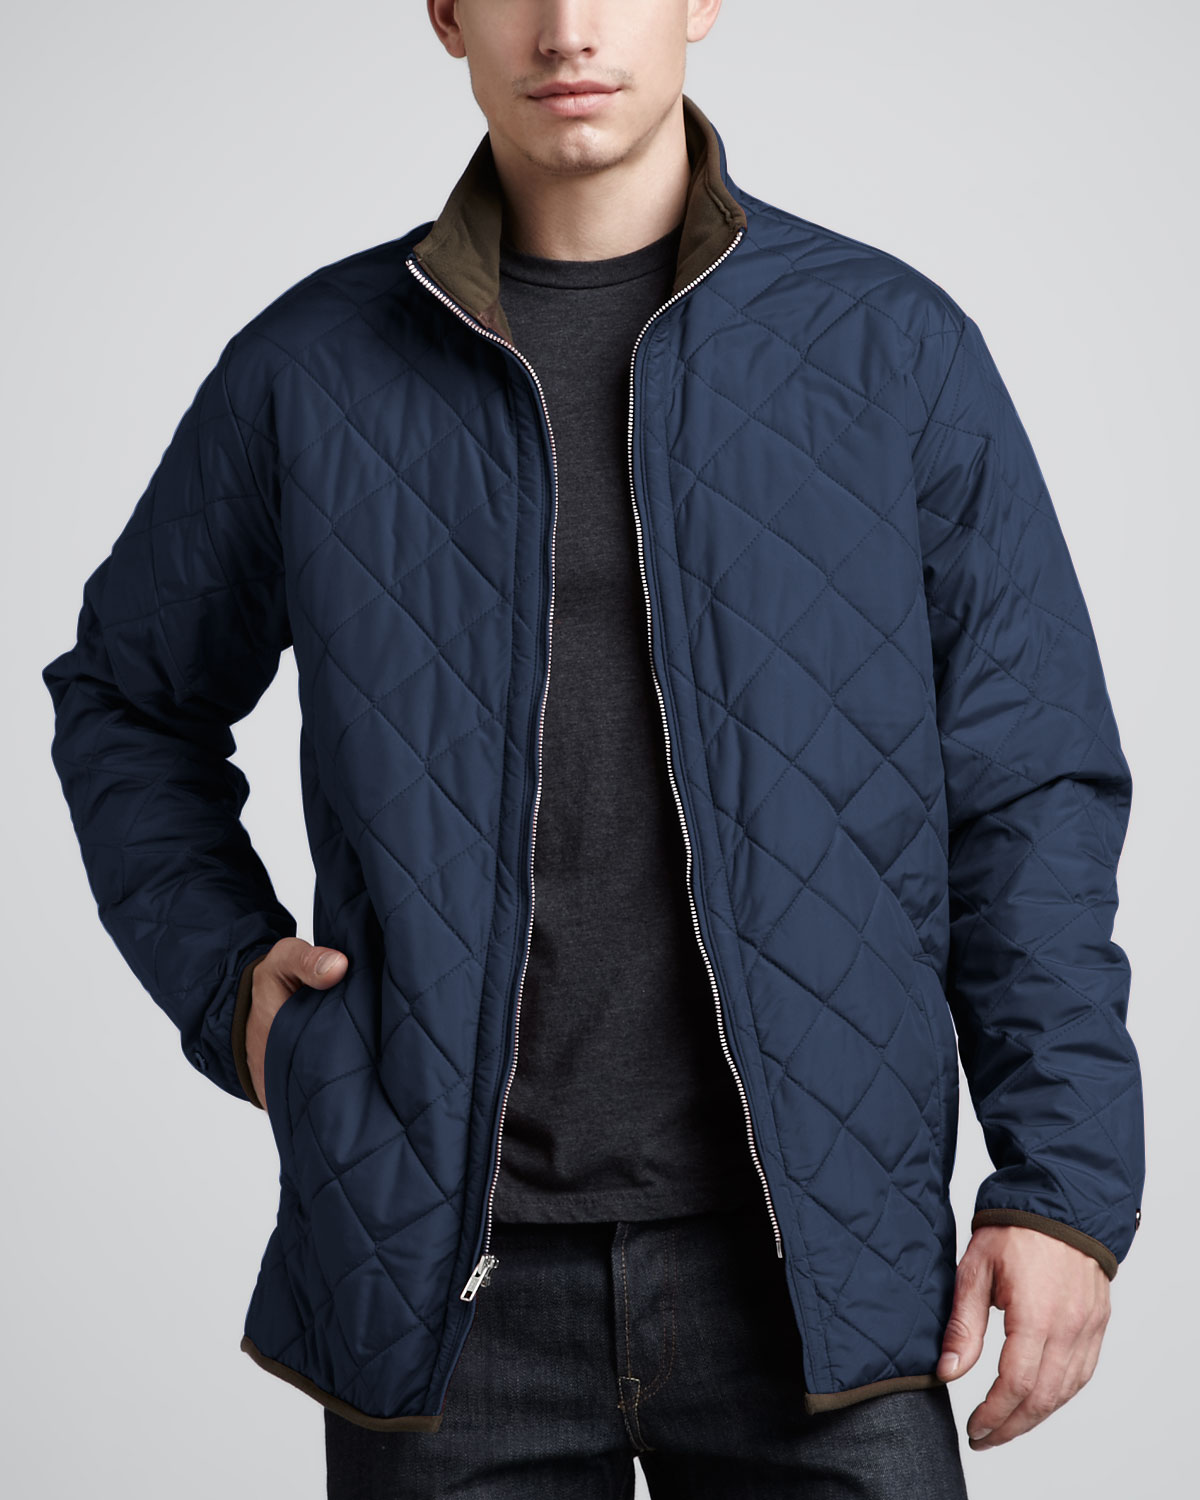 Peter millar Chesapeake Quilted Jacket Navy in Blue for Men | Lyst